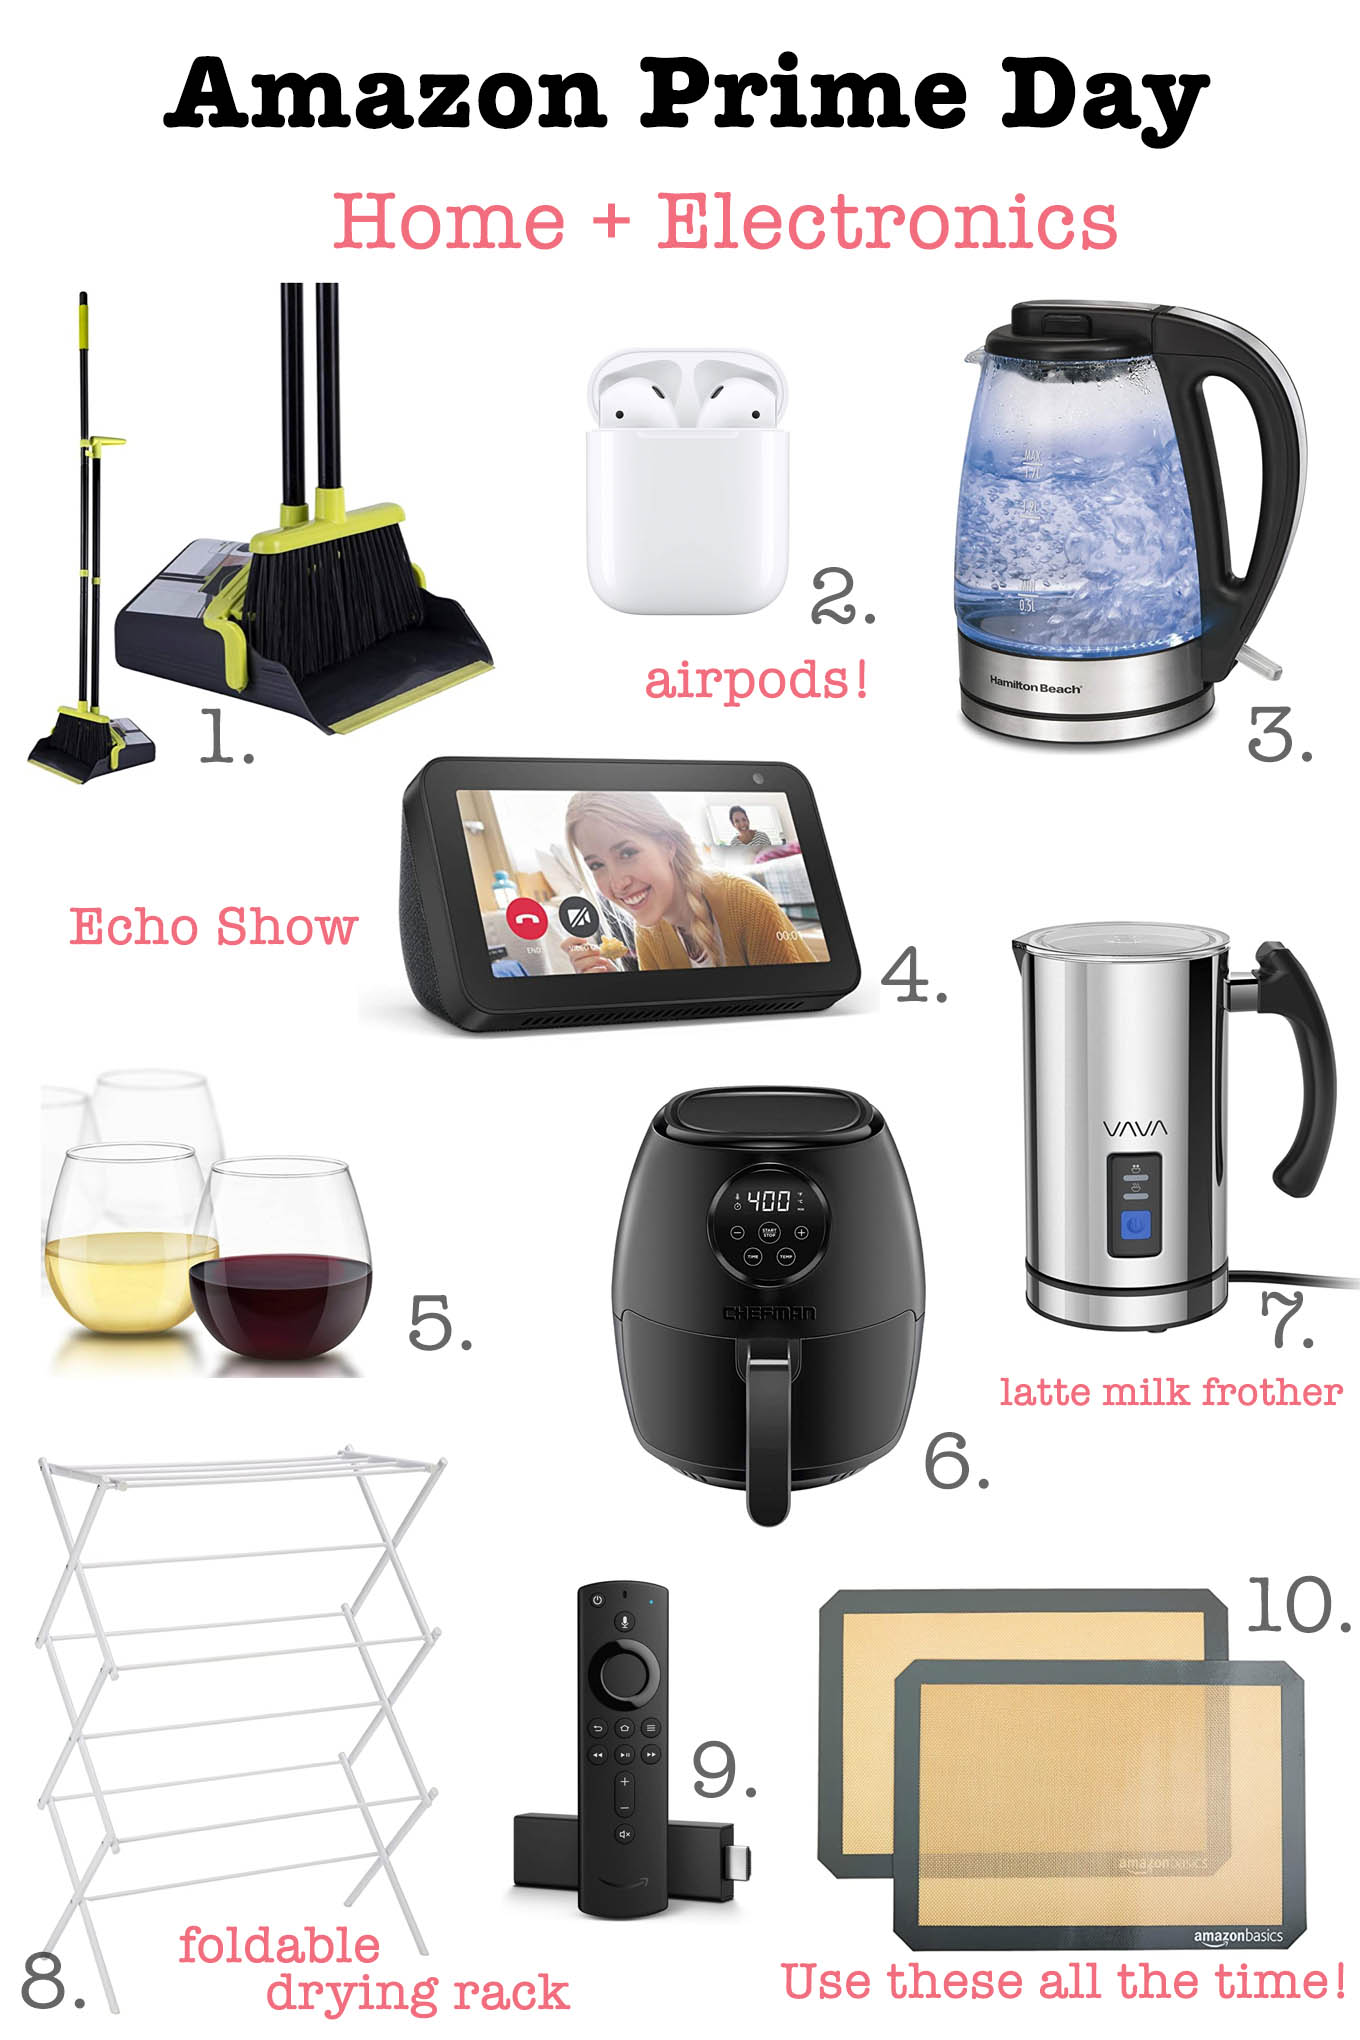 Prime Day by popular Chicago life and style blog, Glass of Glam: collage image of a broom and dust pan set, airpods, water purifier, Echo show, stemless wine glasses, foldable drying rack, Amazon Fire TV, latte milk frother, and non-stick baking rack.